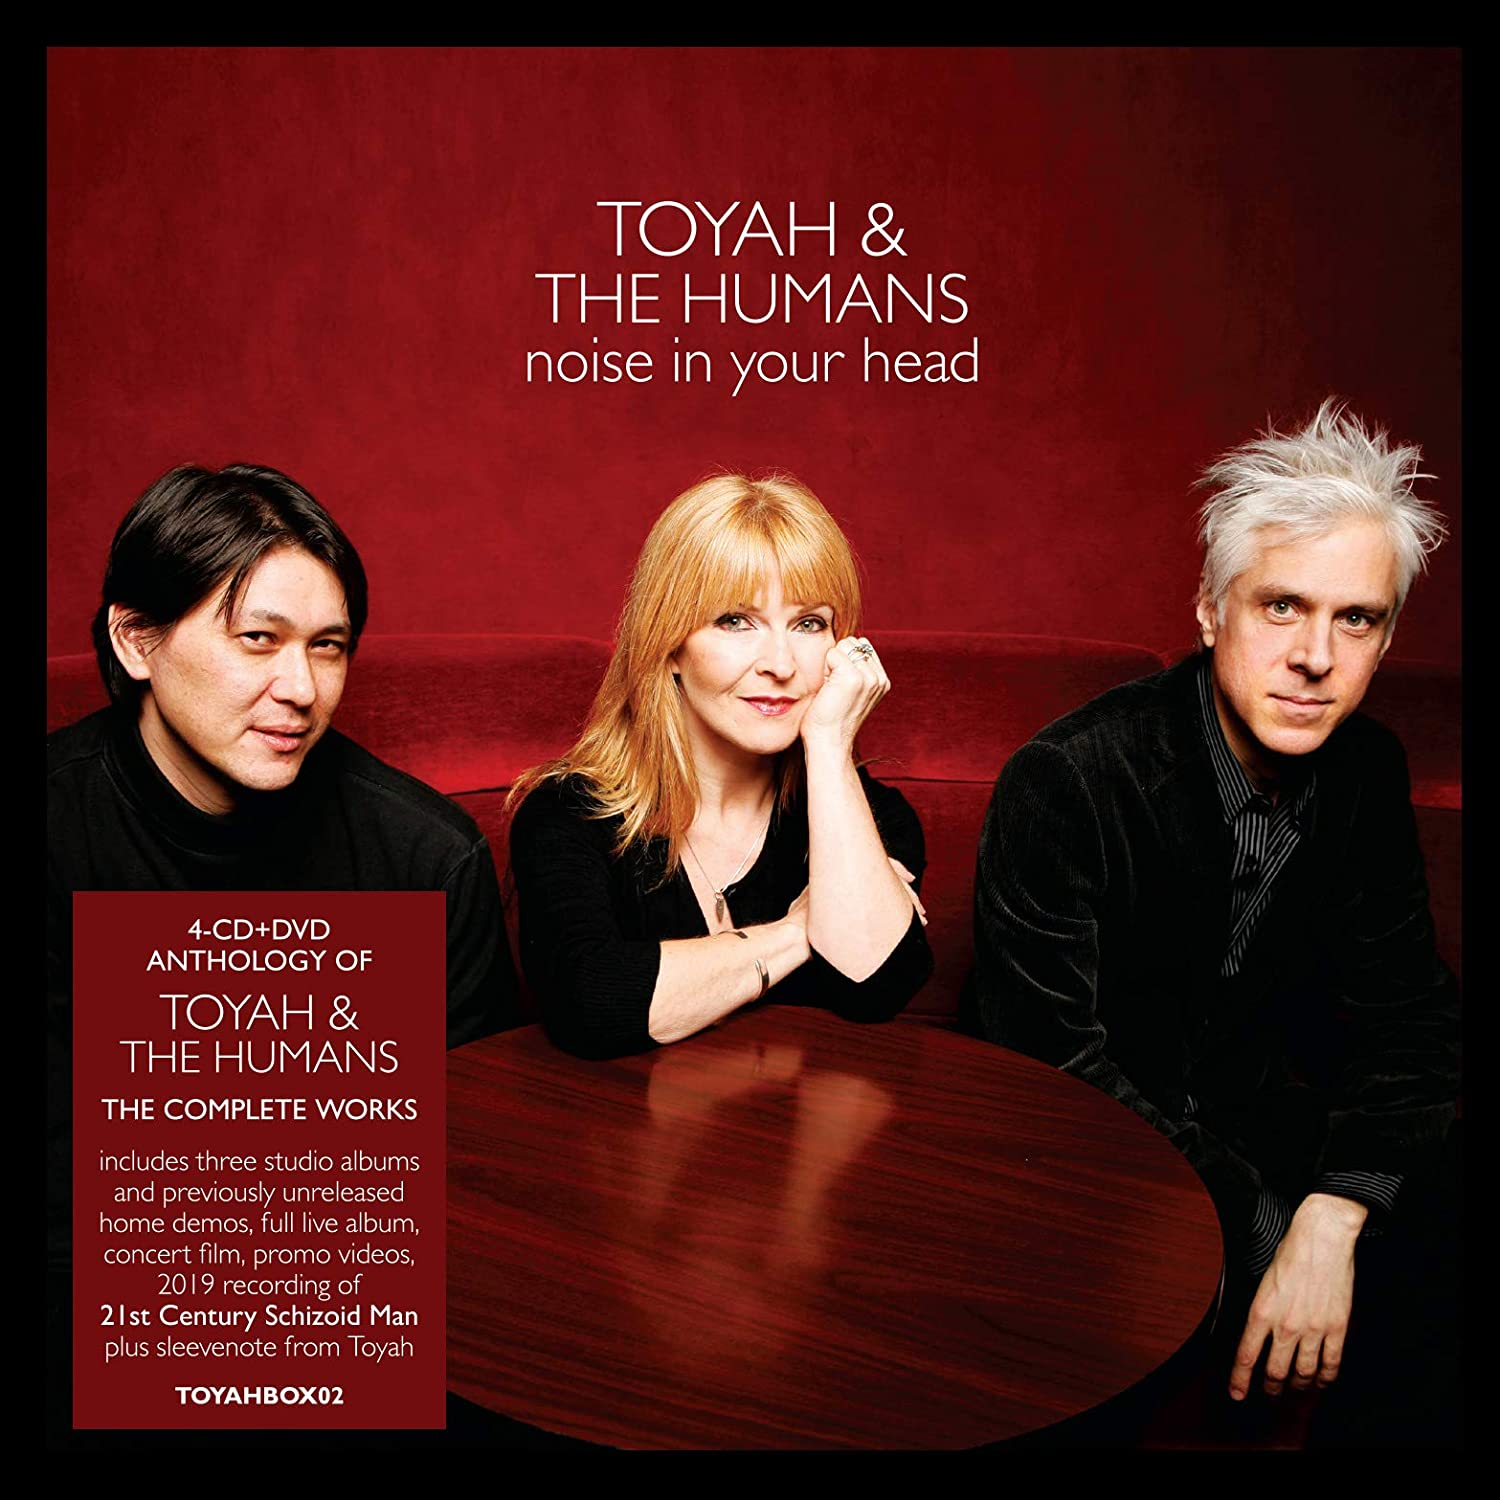 Toyah & The Humans / Noise in Your Head 4CD+DVD anthology signed